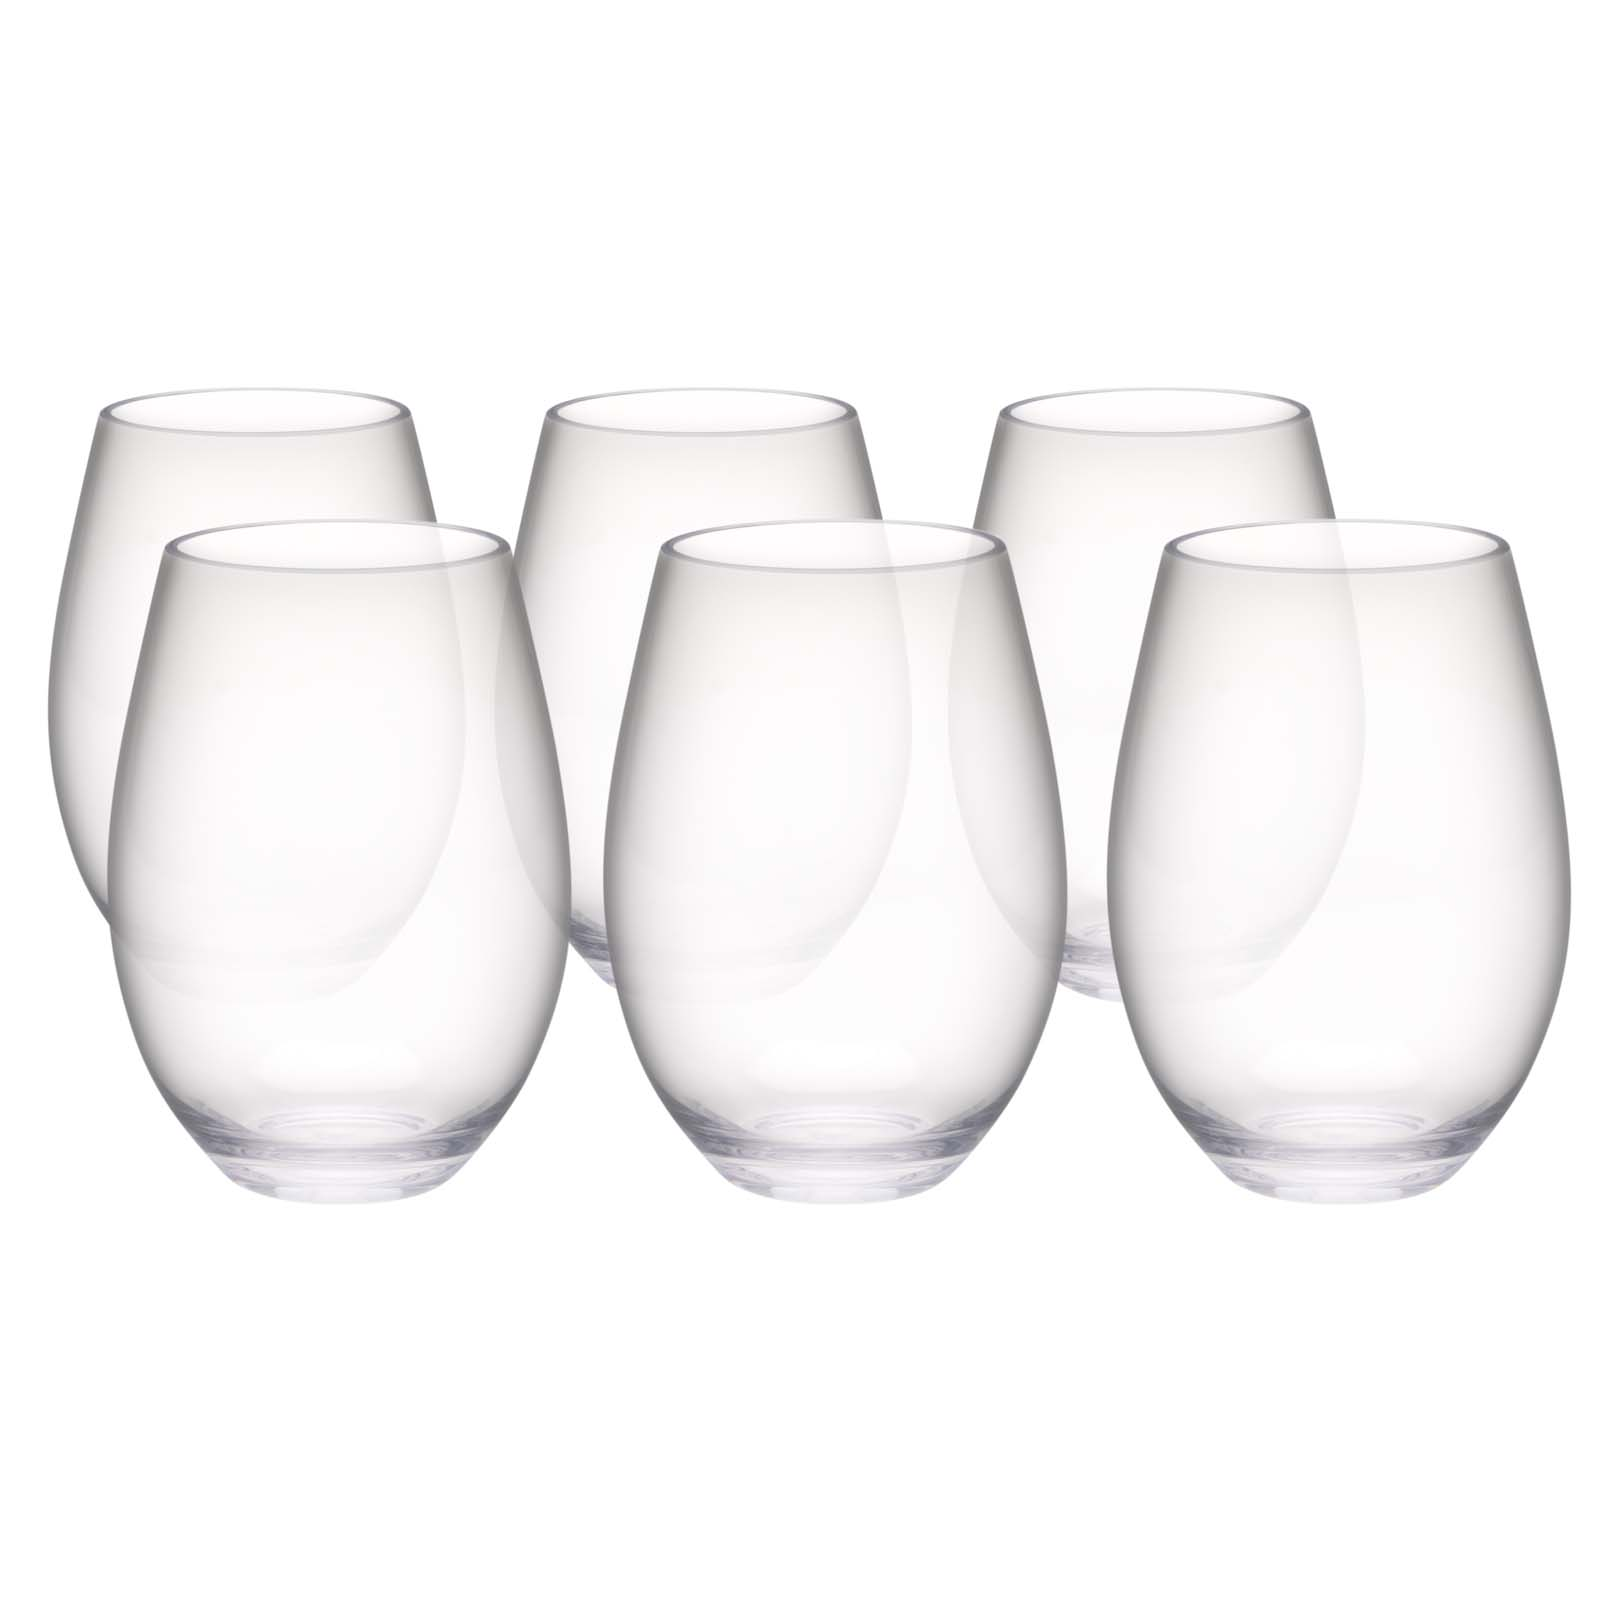 Trinity 20 ounce Plastic Wine Glasses, Clear, 2-piece set slideshow image 1